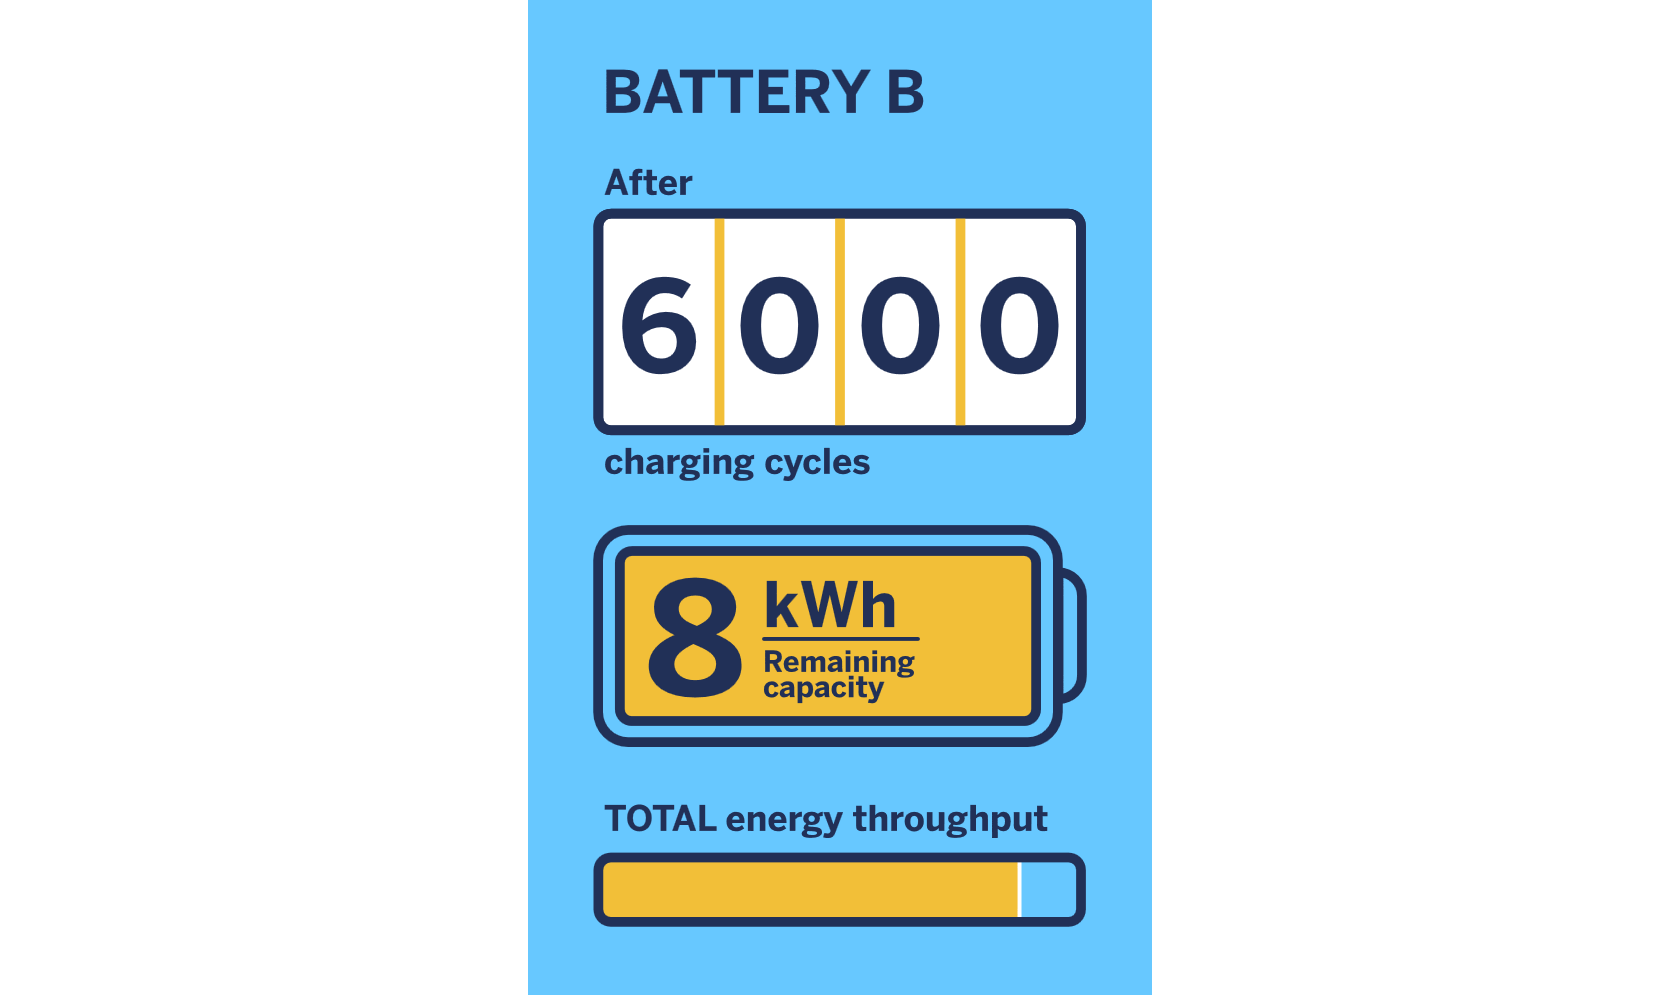 Battery B 6000 Life Cycles